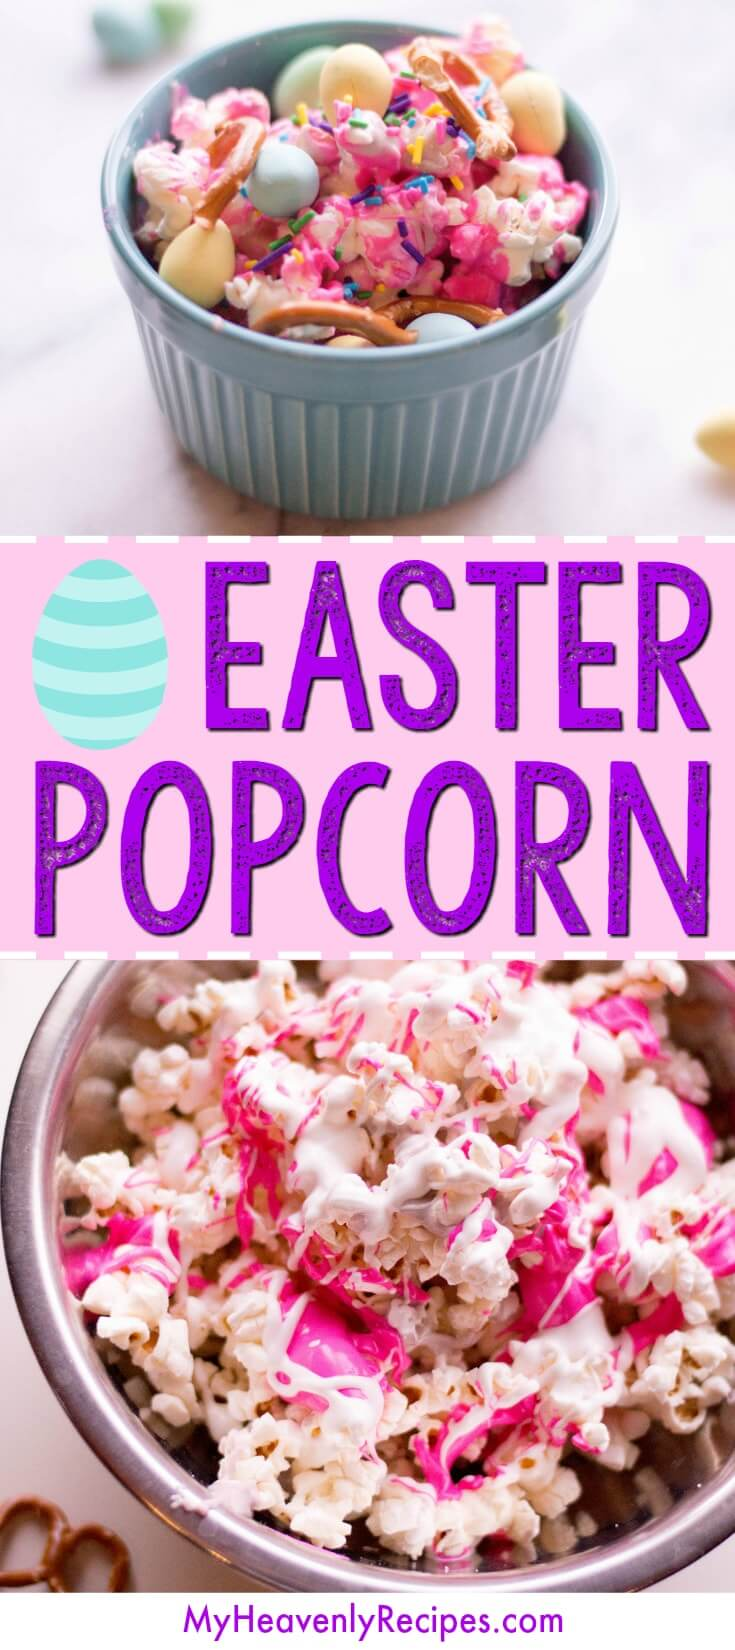 This Sweet Popcorn recipe is SO MUCH FUN to make! Make it with your kids, serve it at an Easter gathering, or give it away as a food gift. It's a great flavored popcorn recipe! #popcorn #easter #sweetpopcorn #popcornrecipe